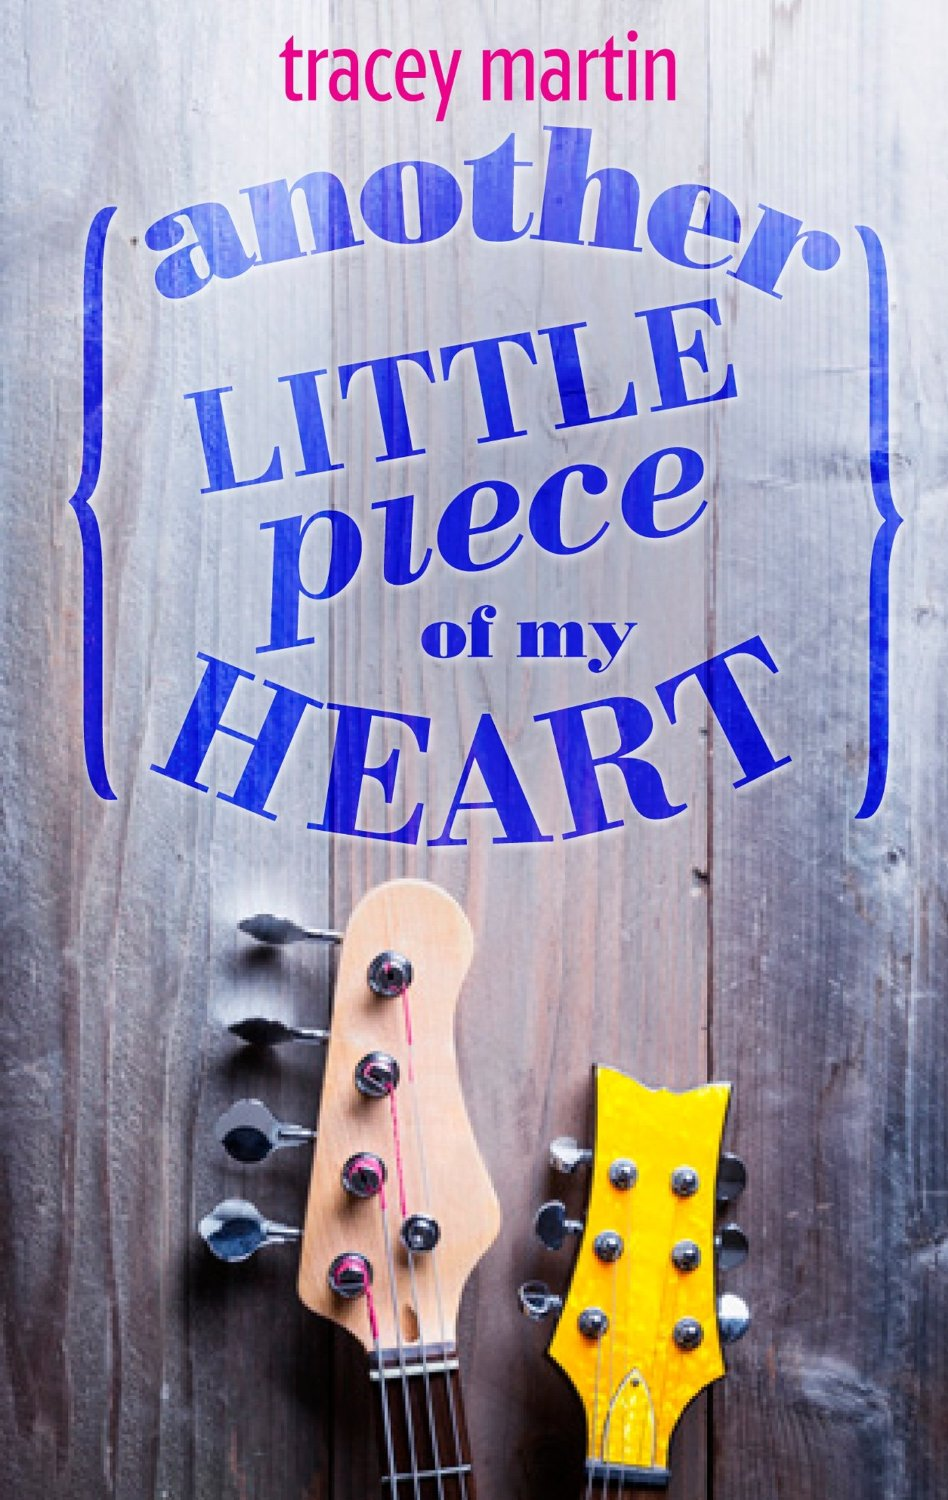 Another Little Piece of My Heart by Tracey Martin | Reviewed on Clear Eyes, Full Shelves